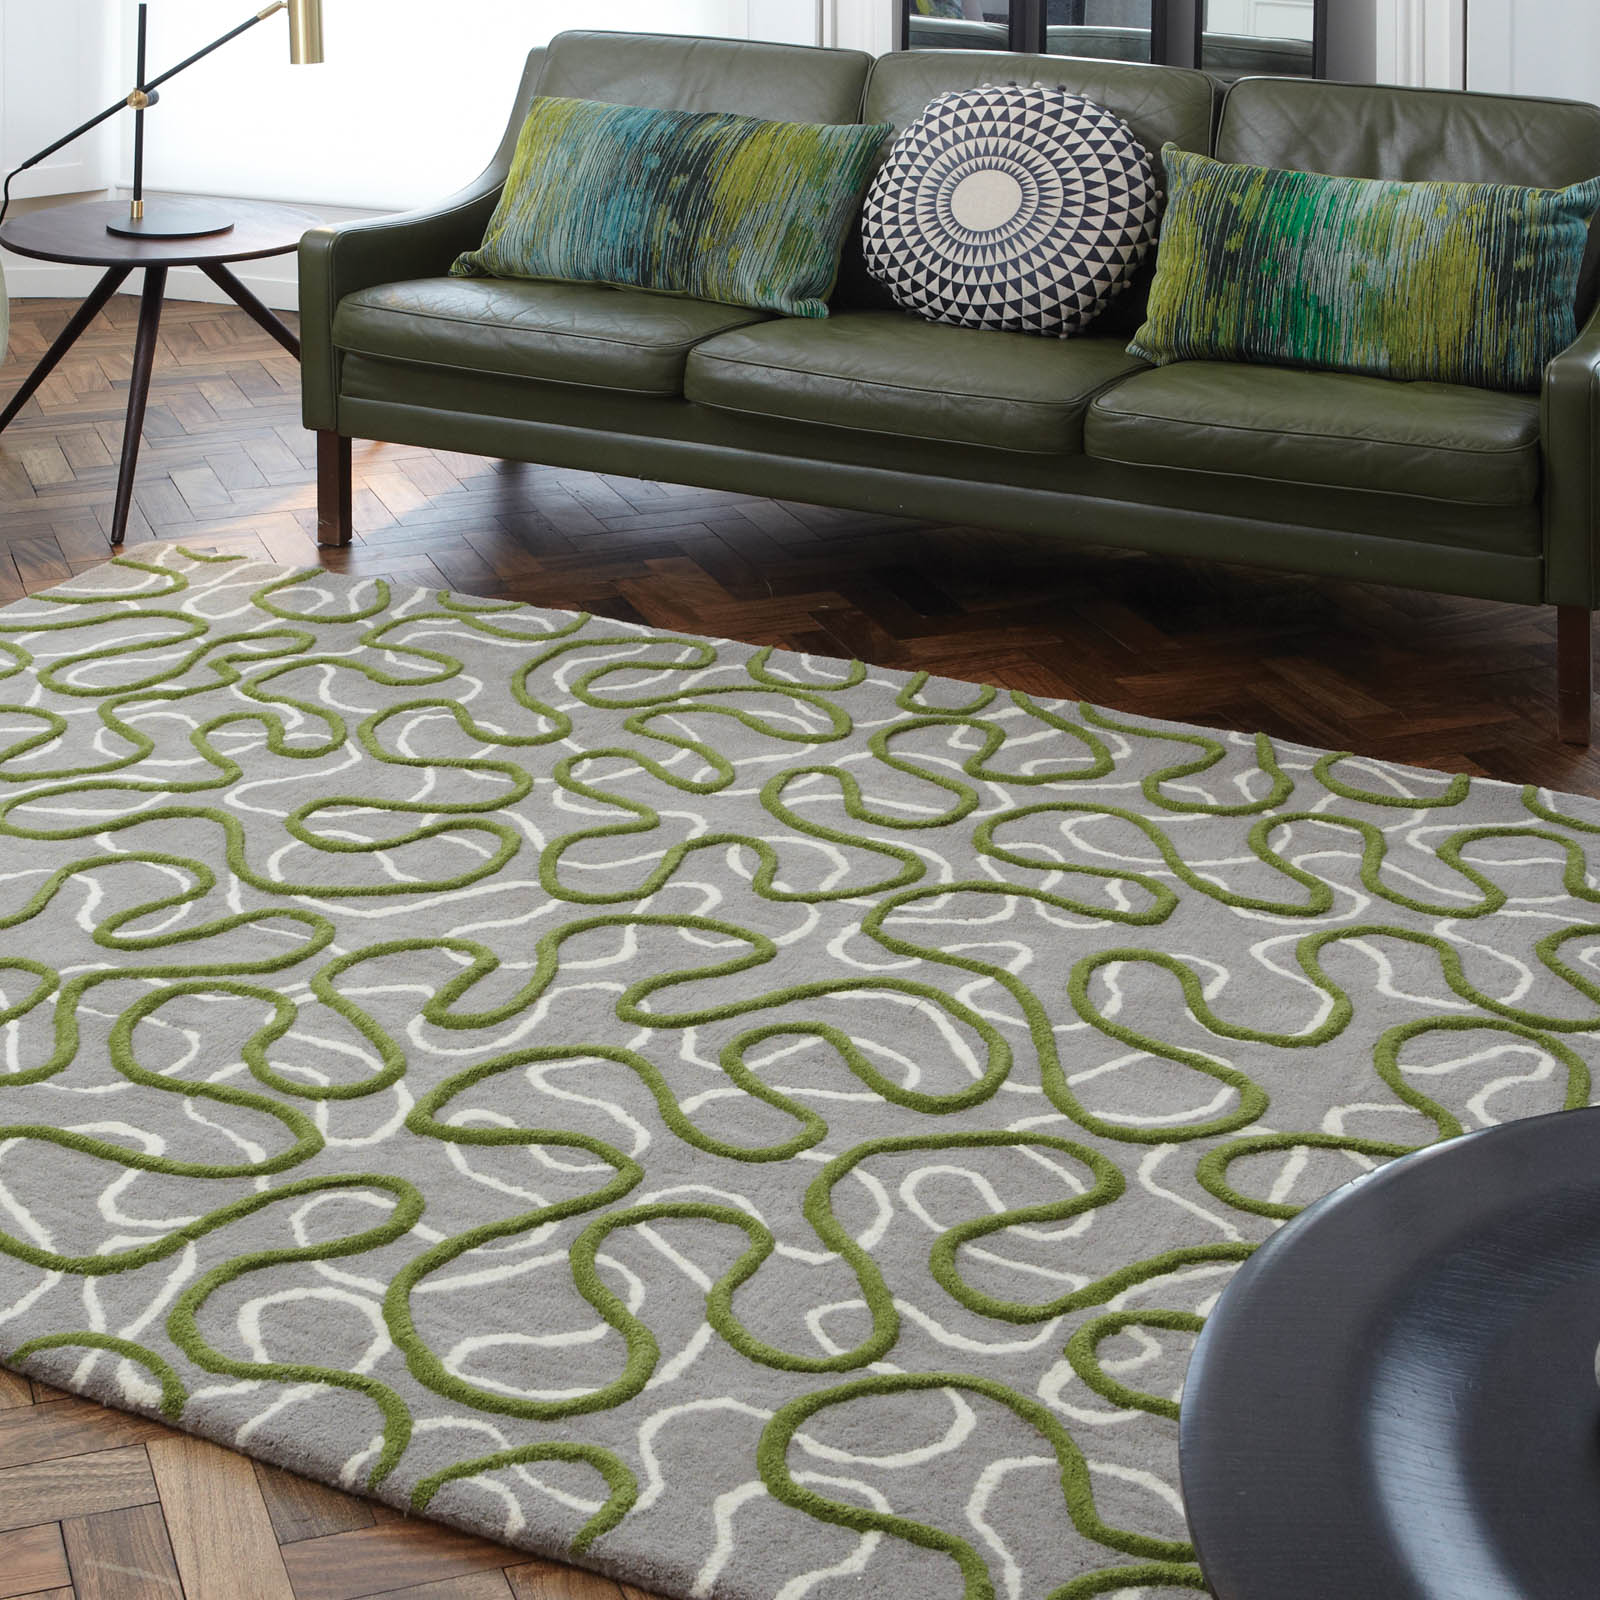 Squiggle Rugs in Green